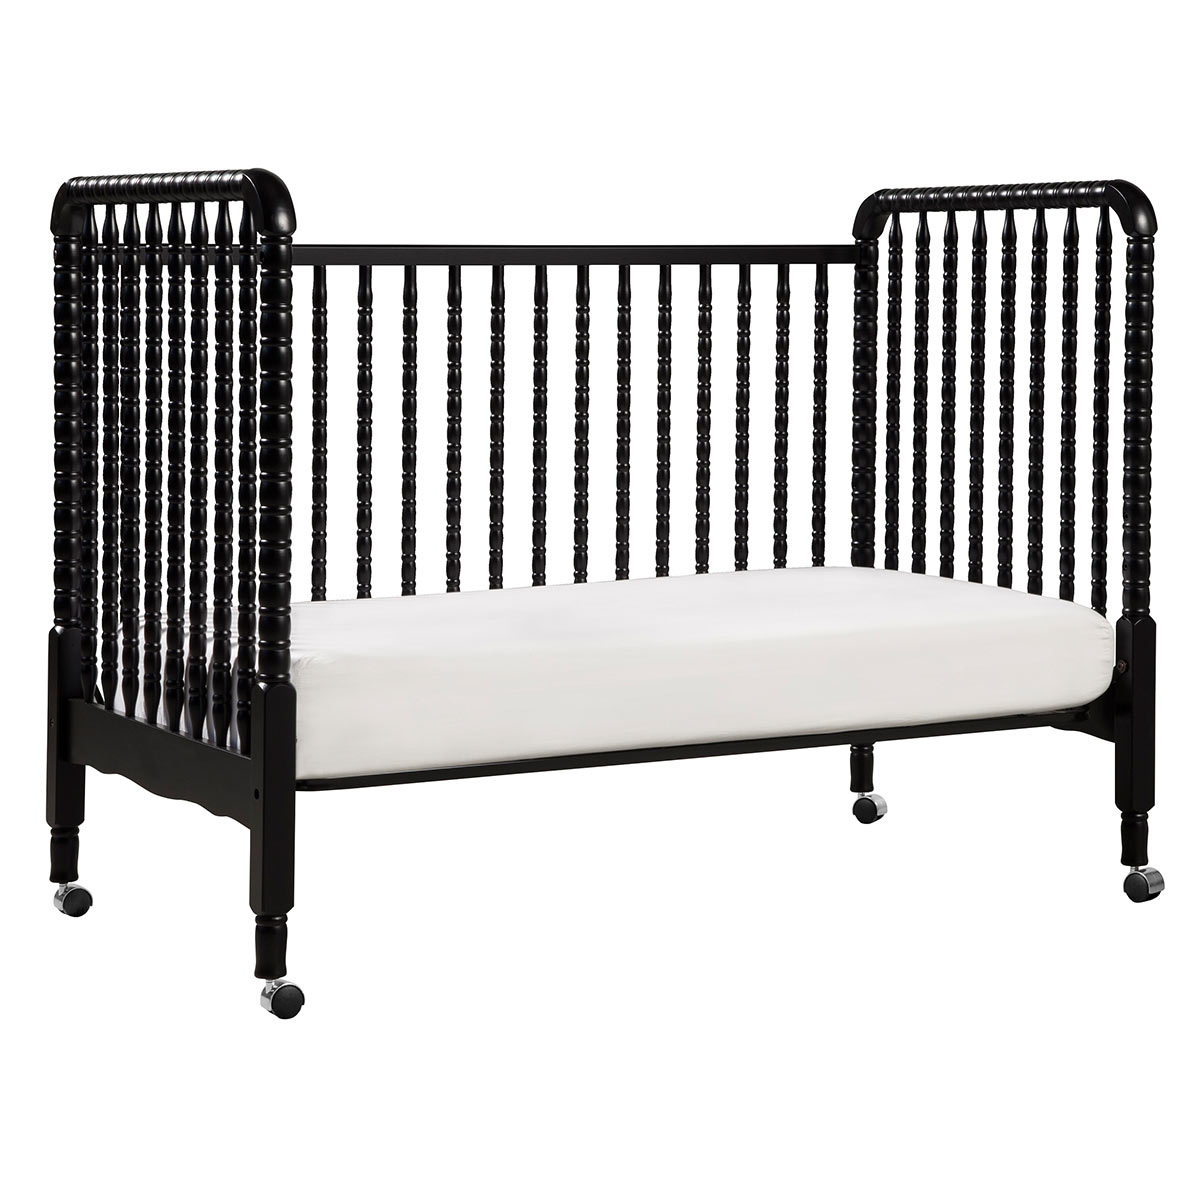 Contemporary white wooden jenny lind crib for your baby to sleep - Contemporary White Wooden Jenny Lind Crib For Your Baby To Sleep 59